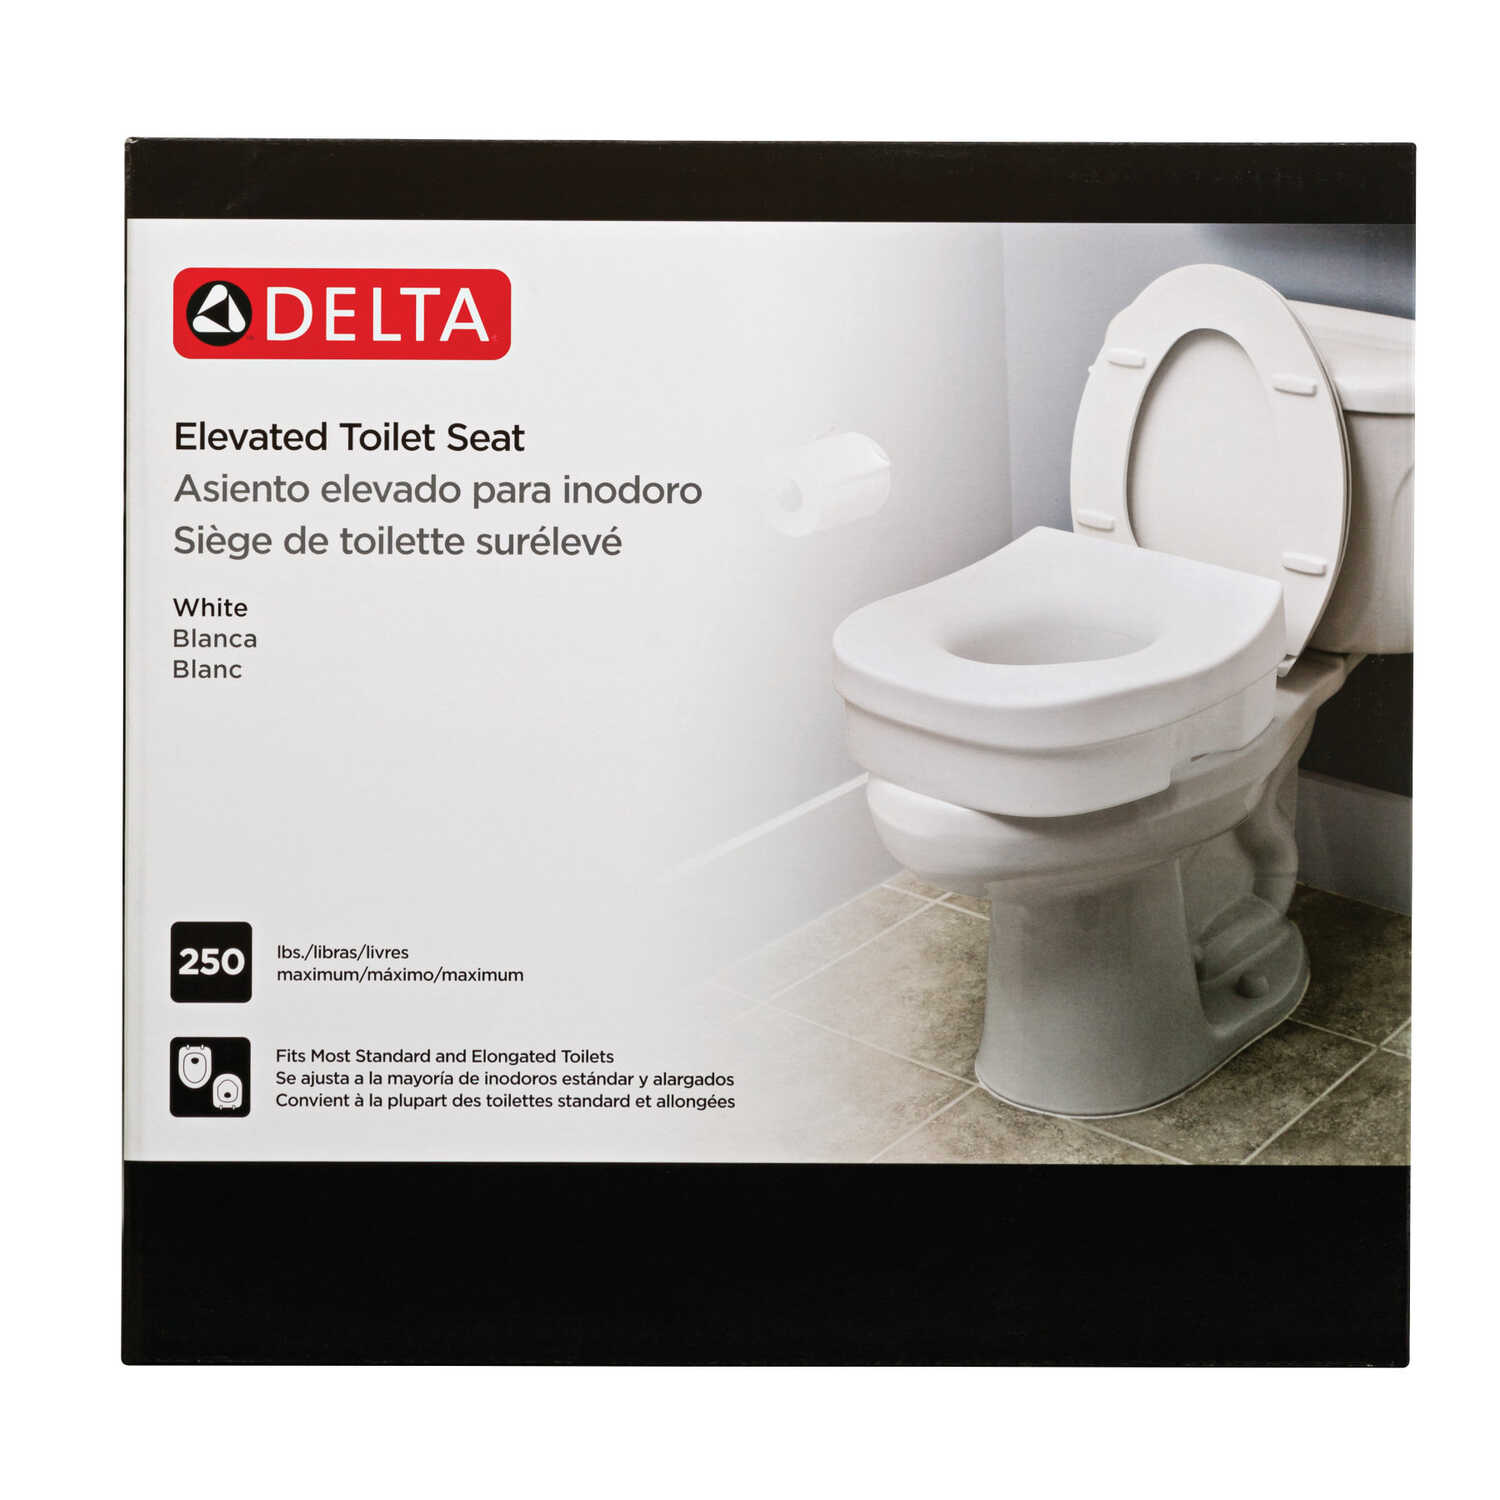 Remarkable Delta White Elevated Toilet Seat Plastic 5 In H X 11 3 4 In Gmtry Best Dining Table And Chair Ideas Images Gmtryco